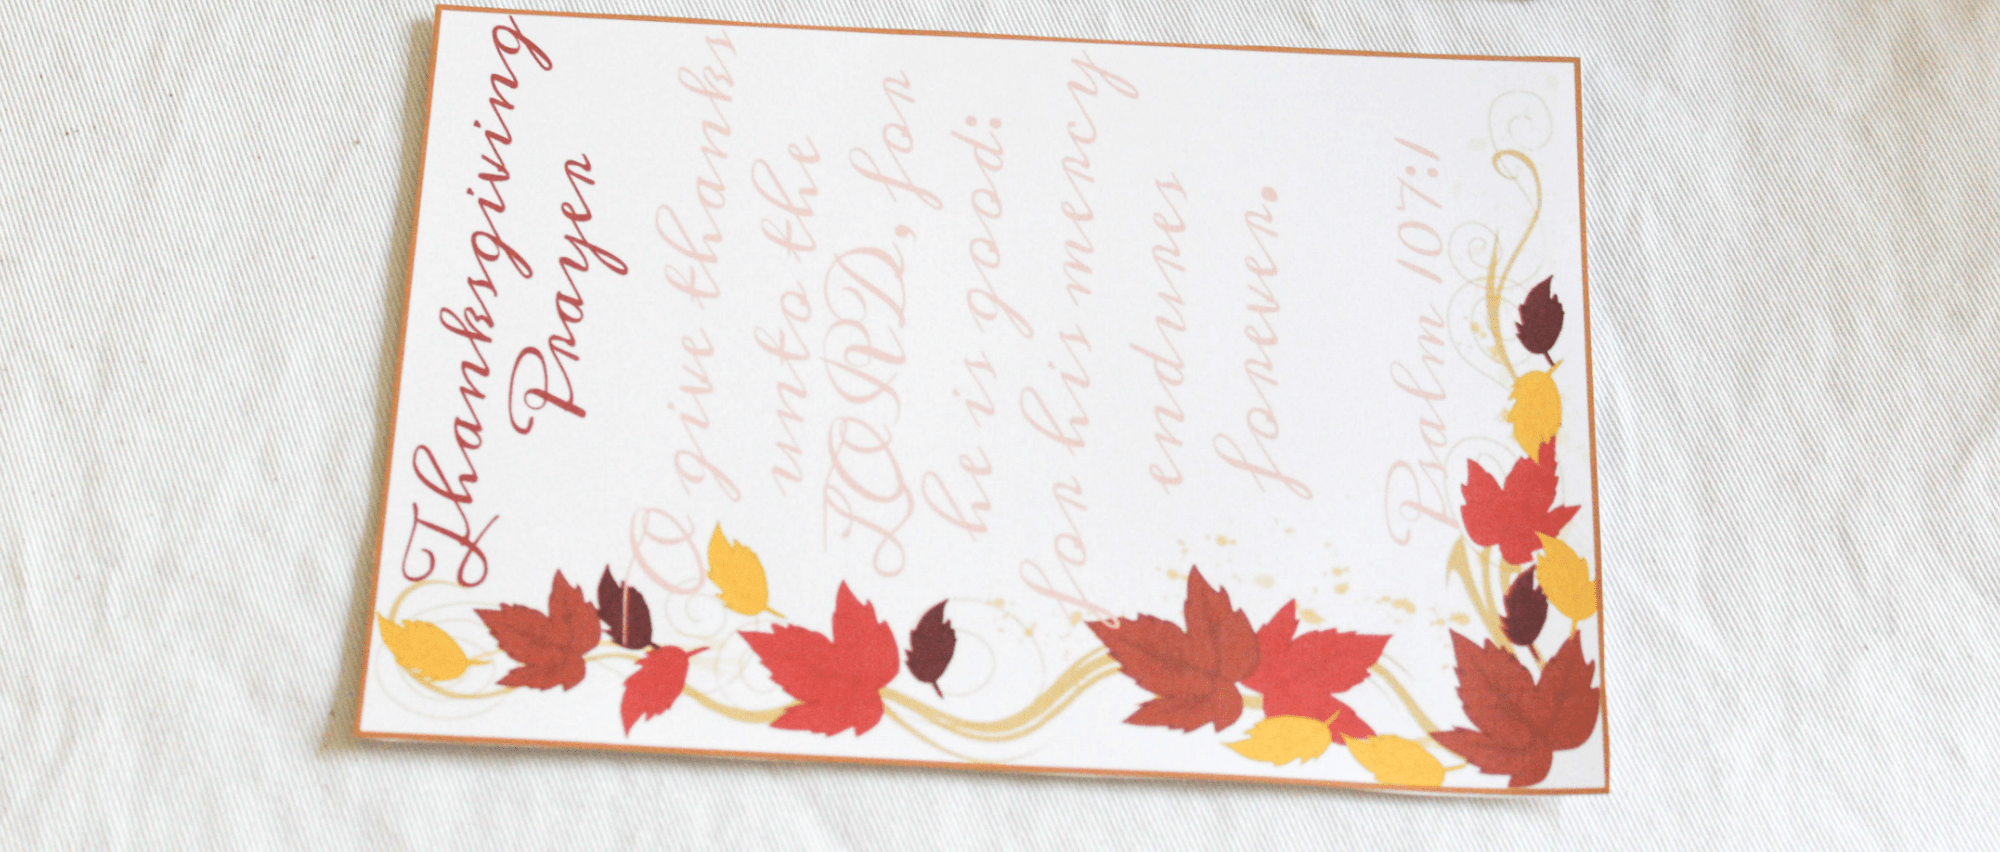 thankful-prayer-cards